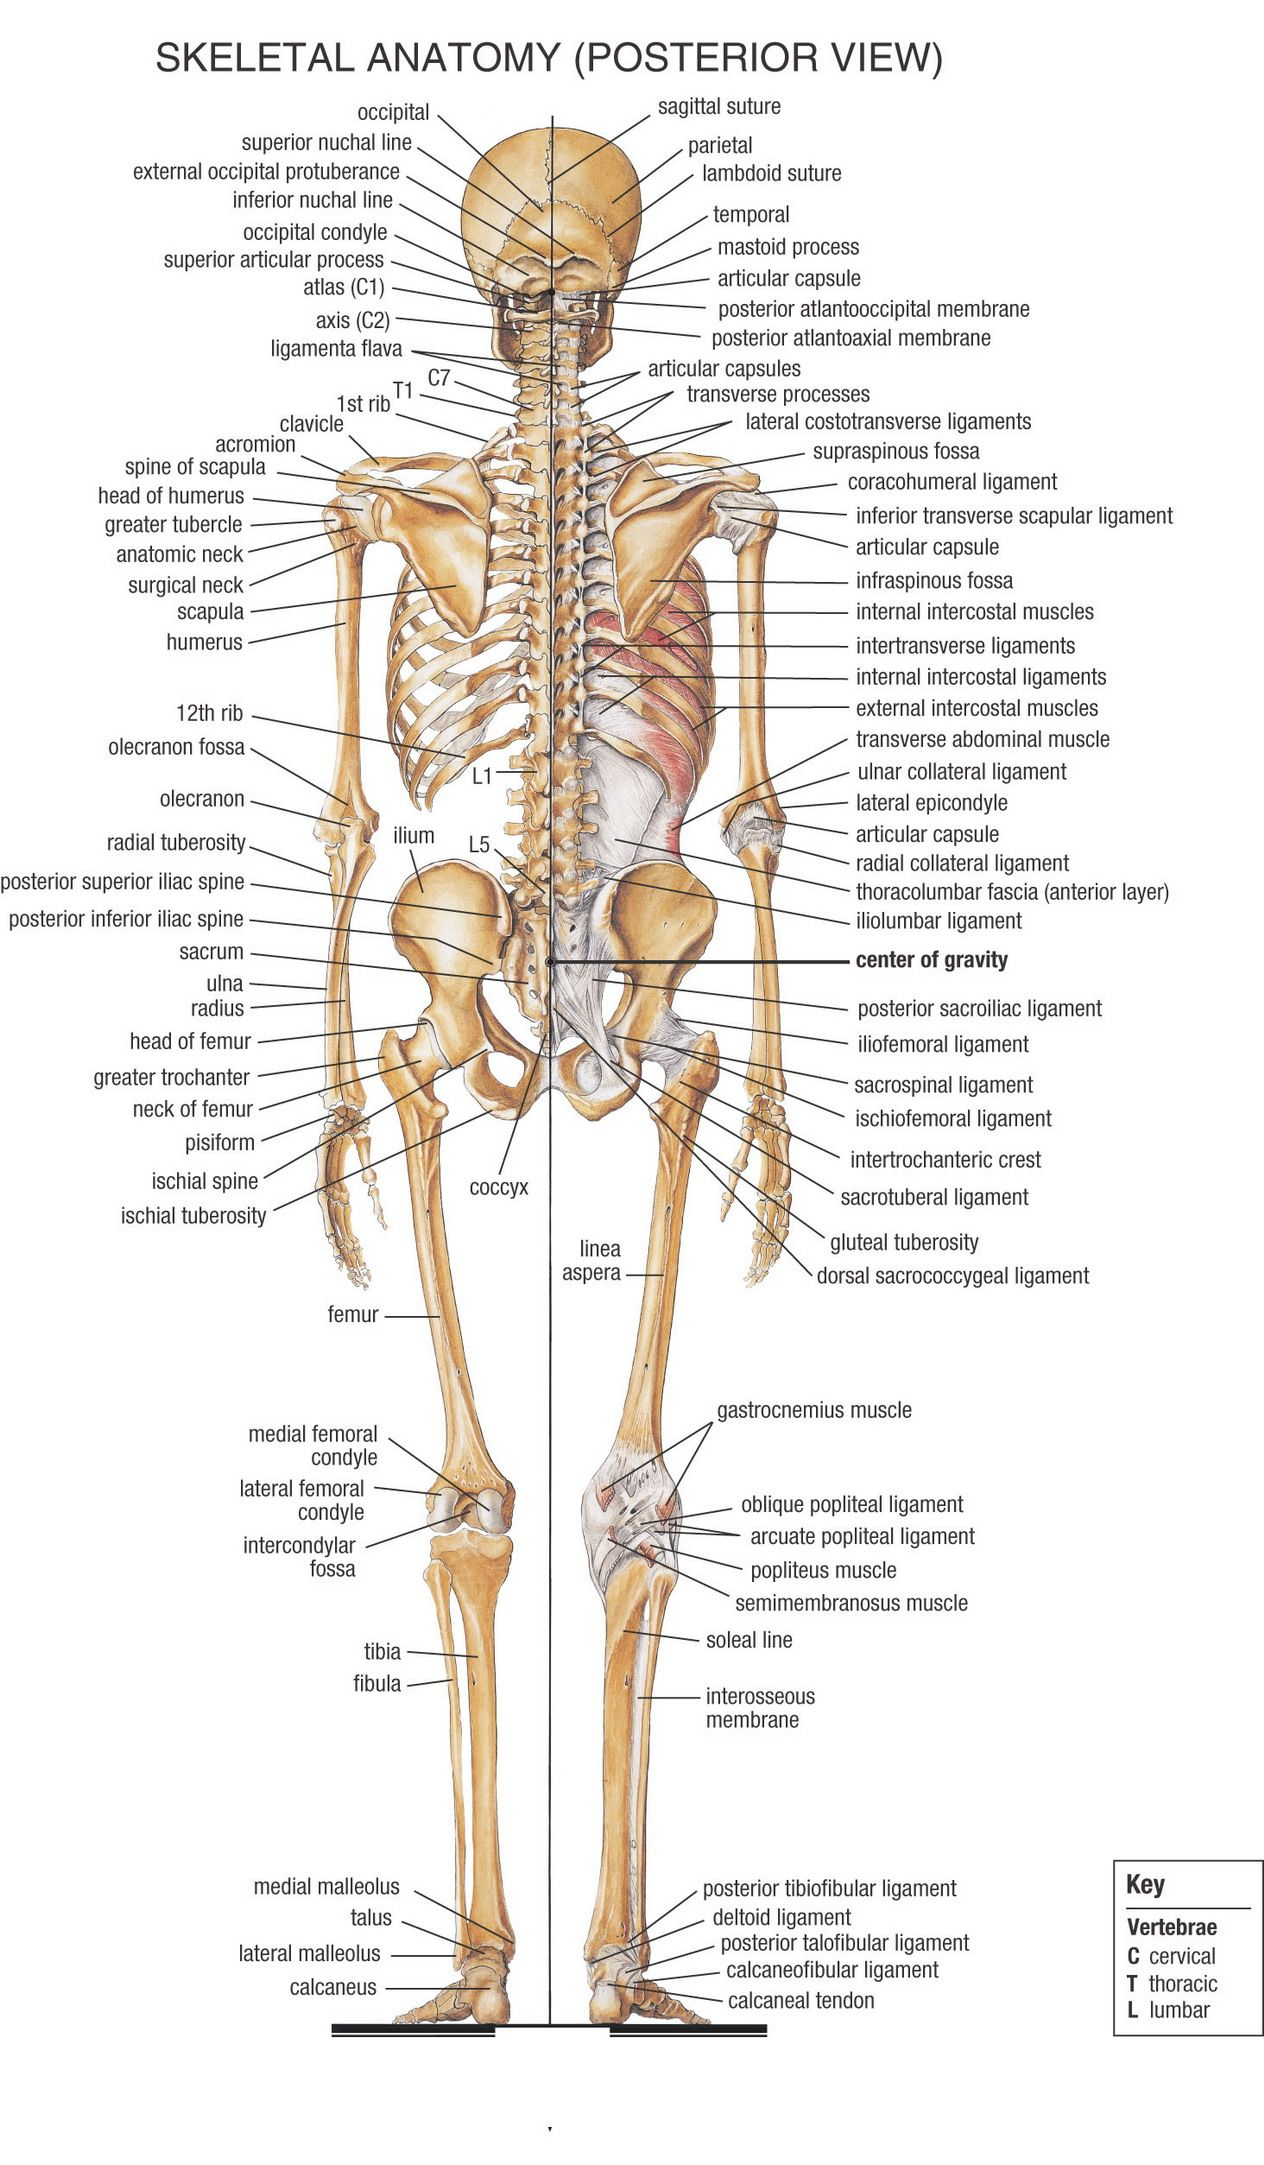 Posterior View Of Pelvis 18 Skeletal Anatomy The Human Body